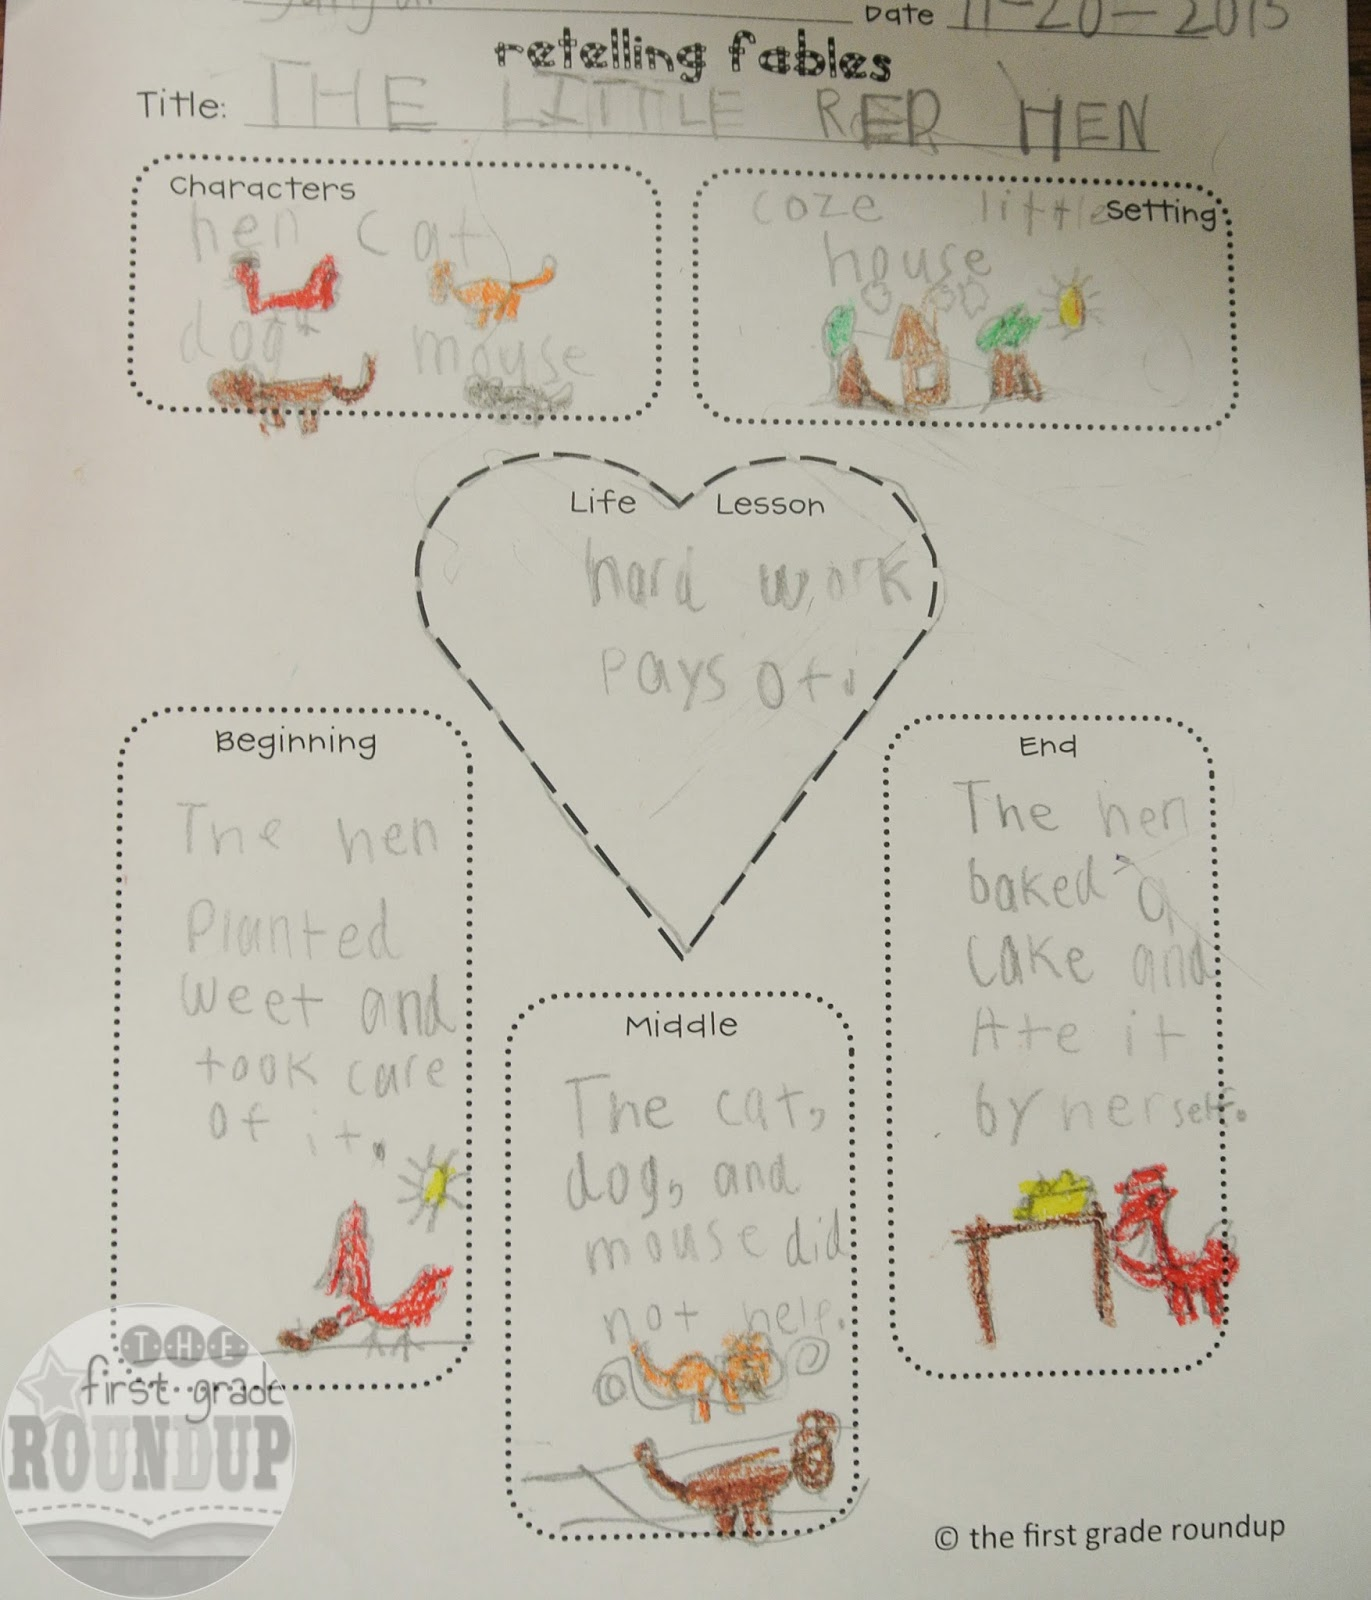 The Little Red Hen Amp Economics